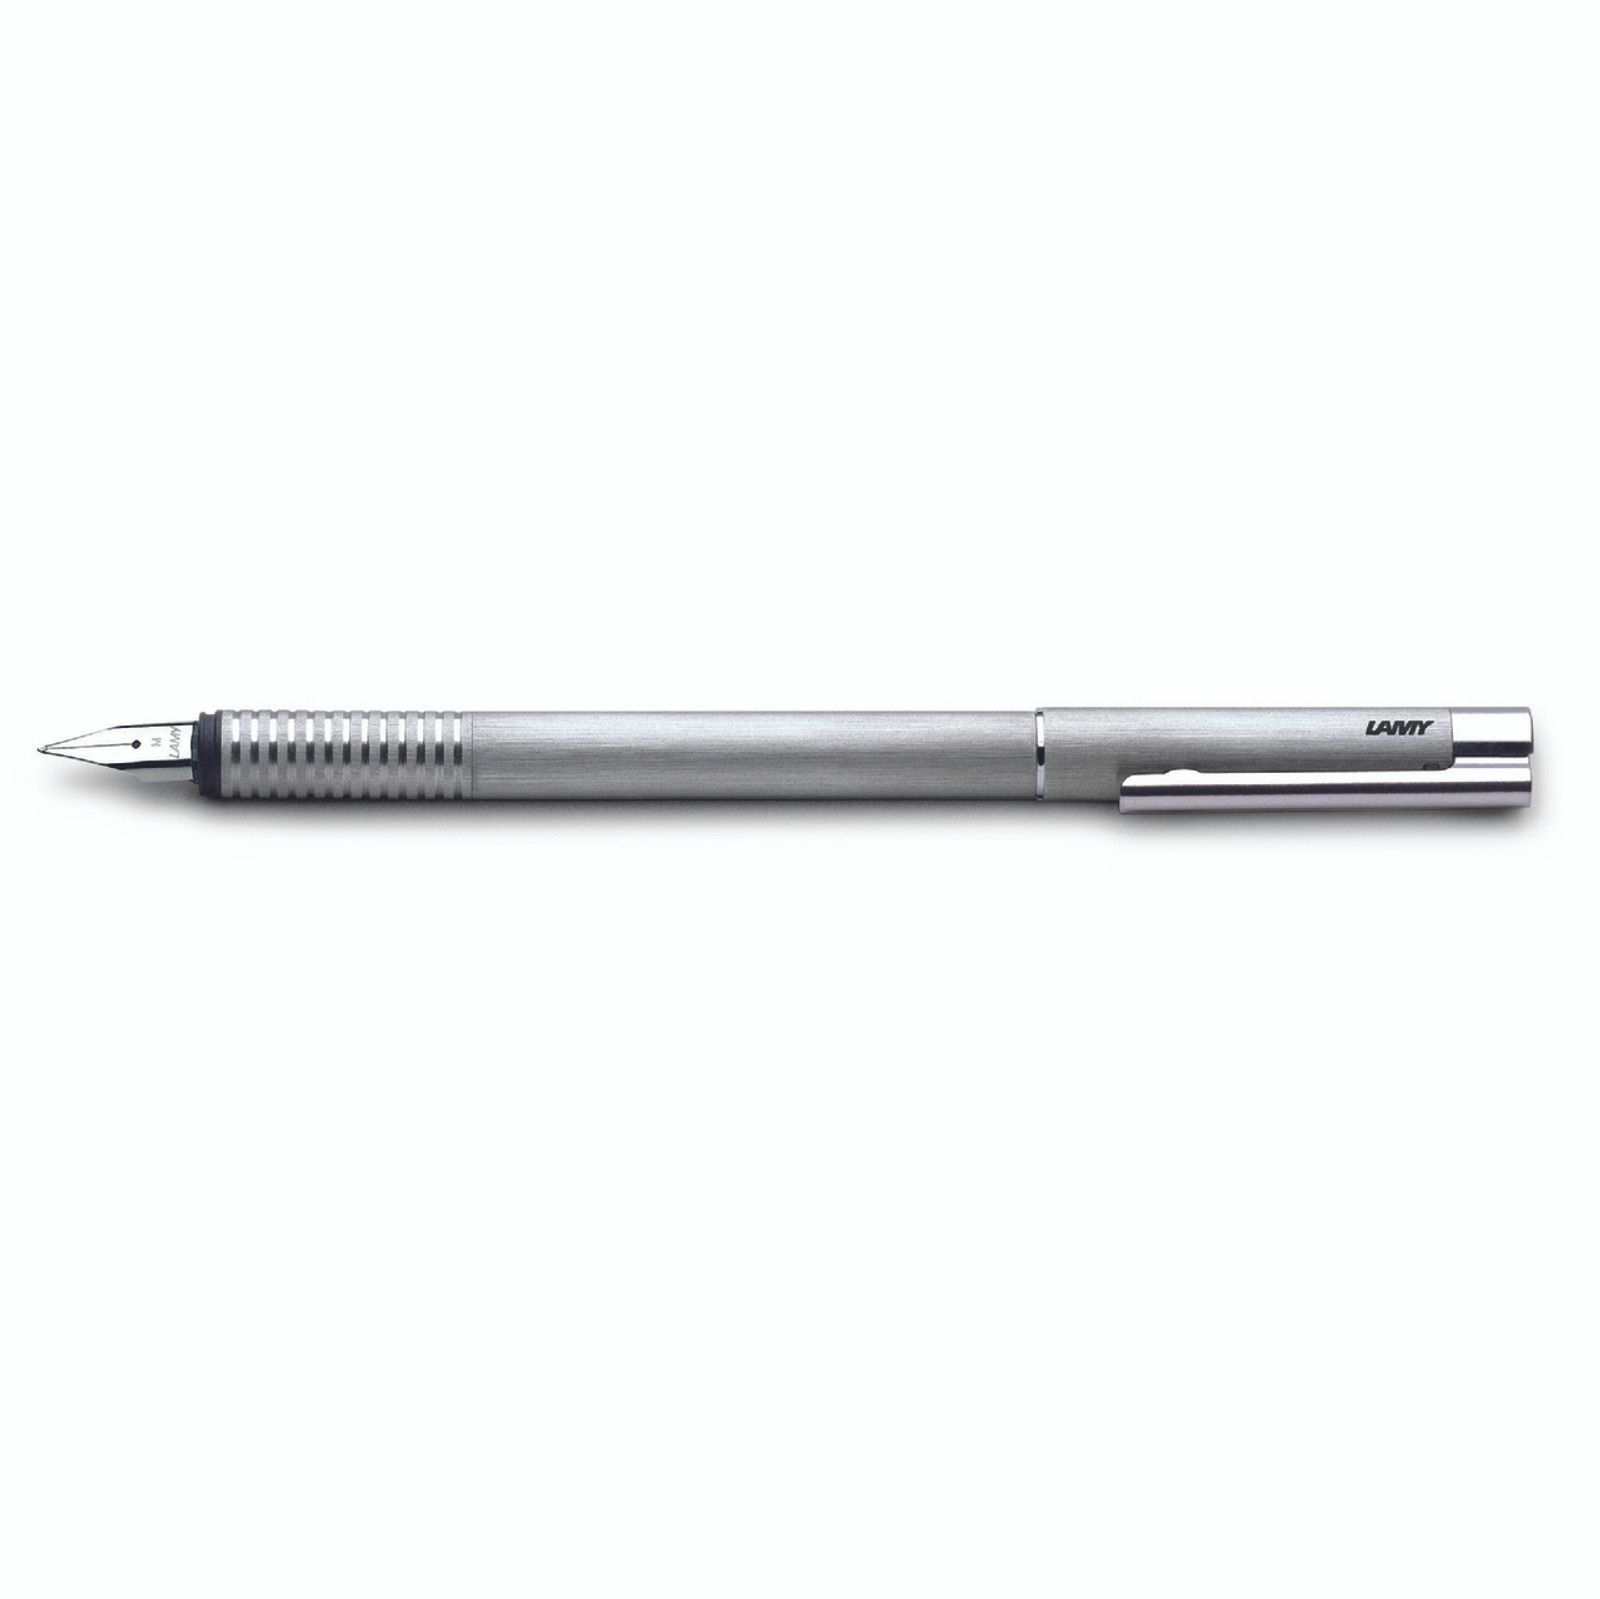 LOGO Brushed Steel Fountain Pen